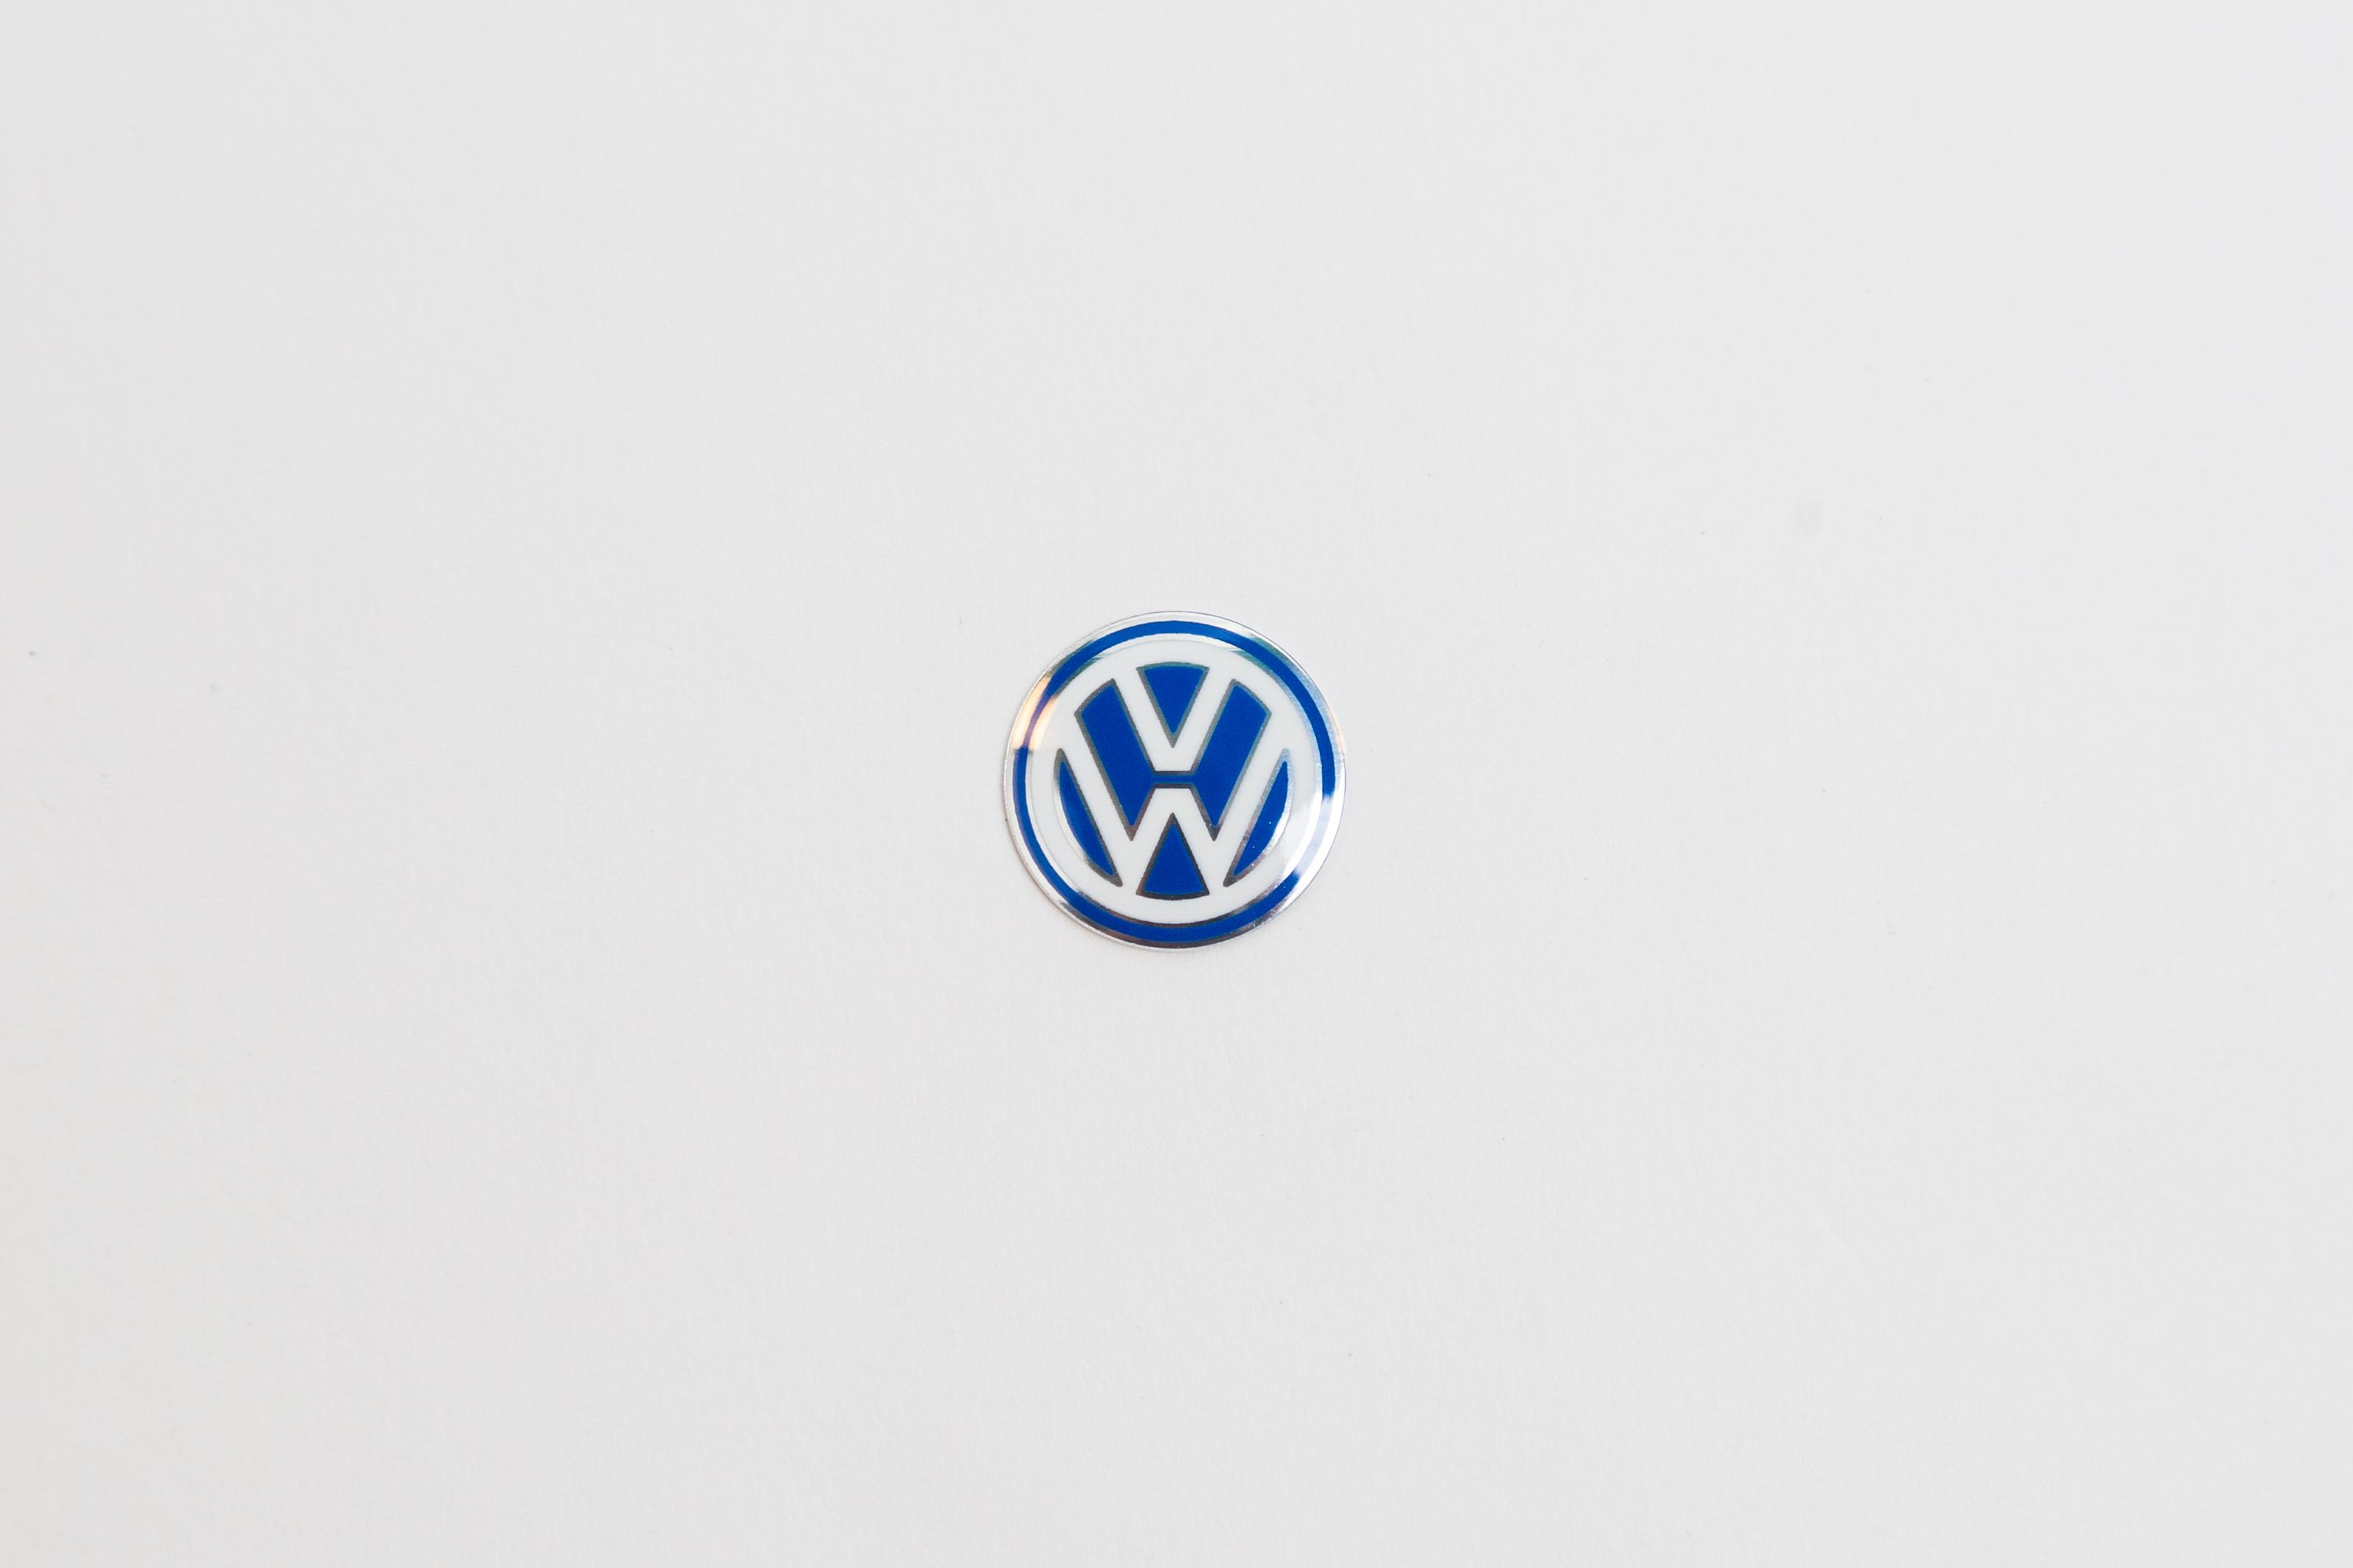 Vw Of Kirkland >> Volkswagen GTI Vw logo for key fob. Logo, key, fob, emblem ...